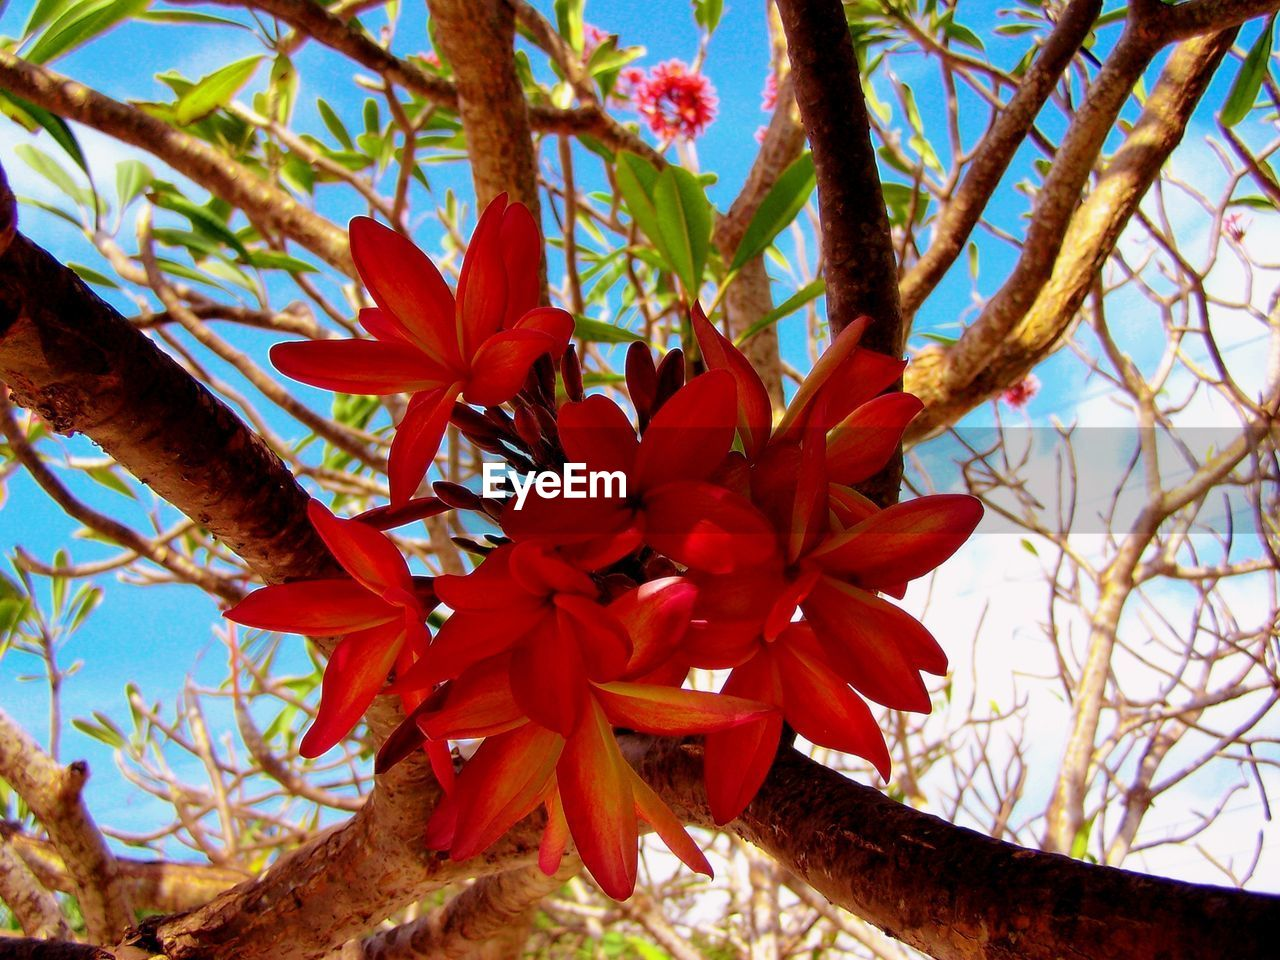 Low angle view of red flowers blooming outdoors